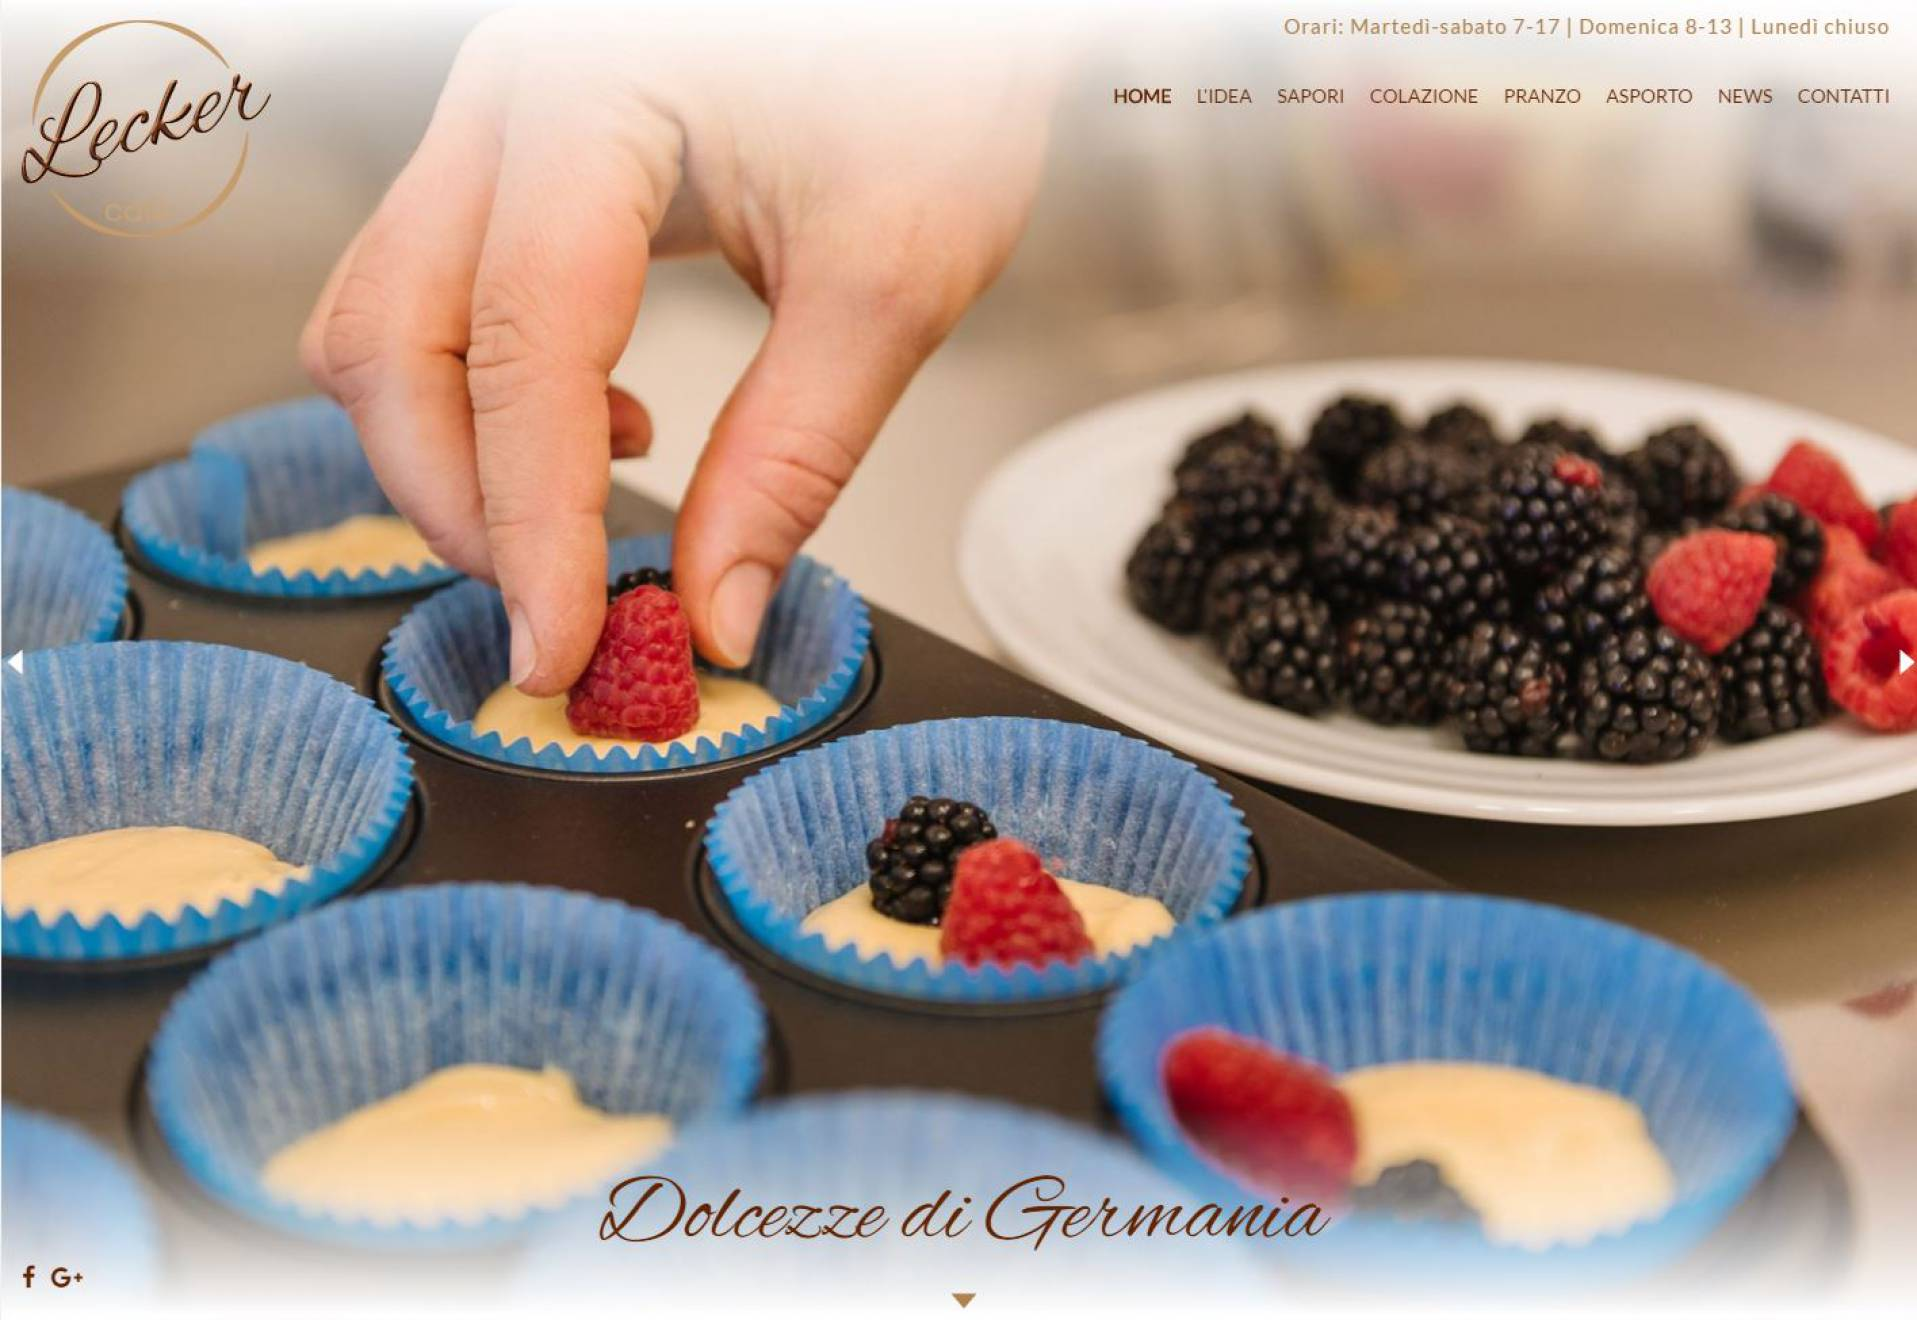 home page sito Lecker cafe